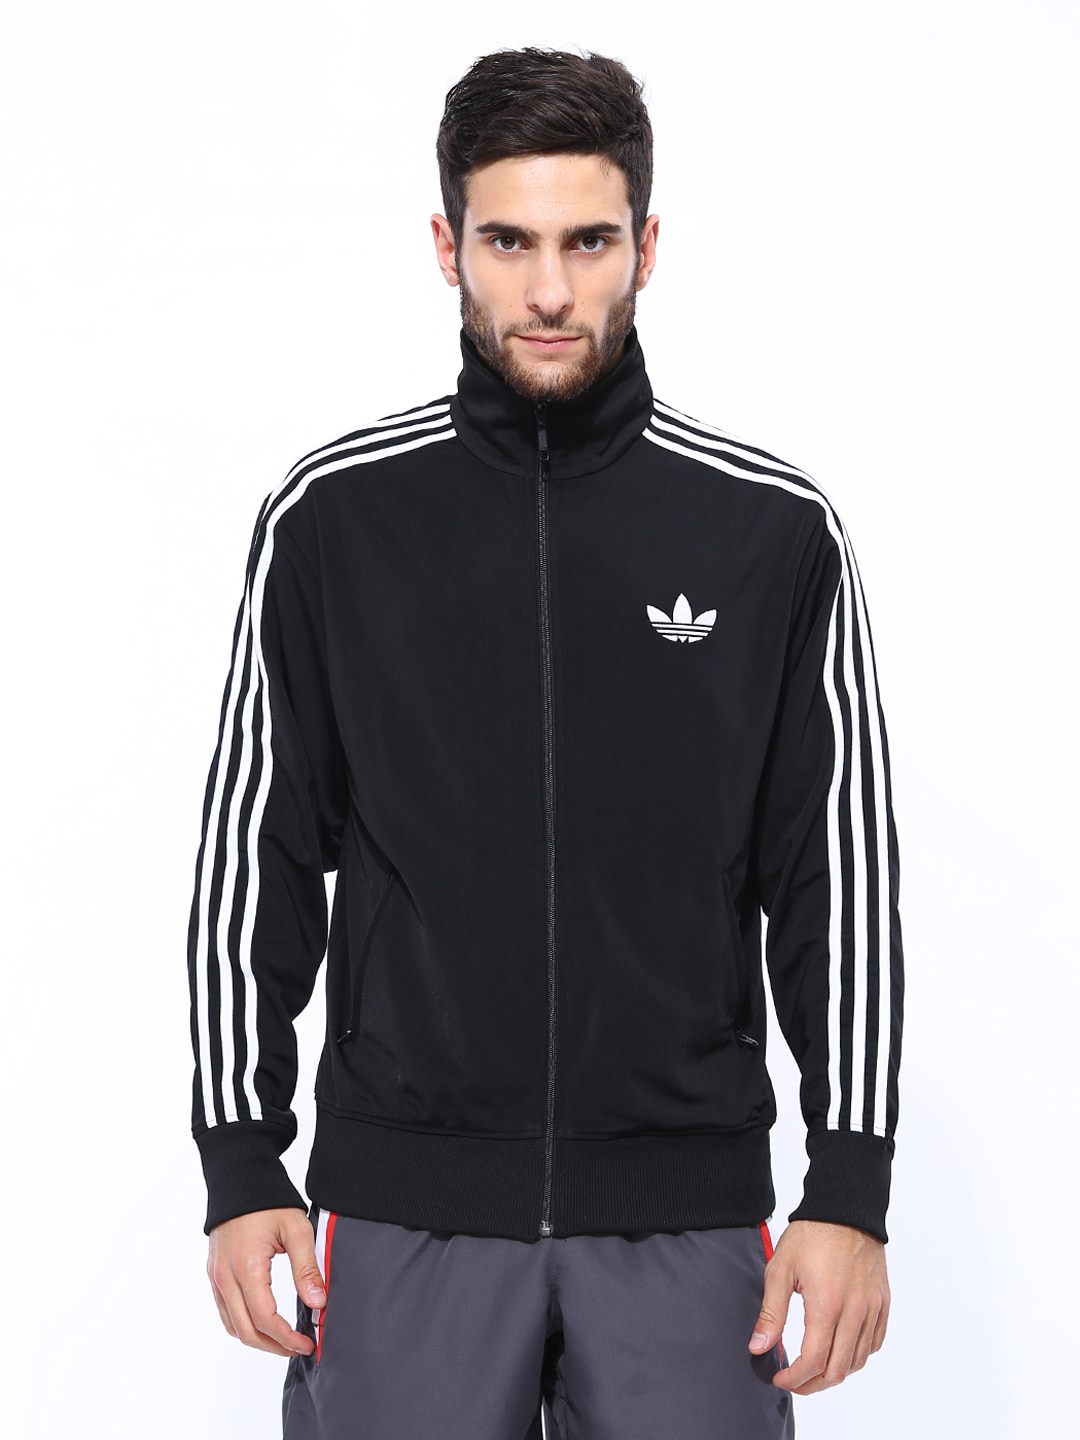 Buy Adidas Originals Jacket Black Off58 Discounted